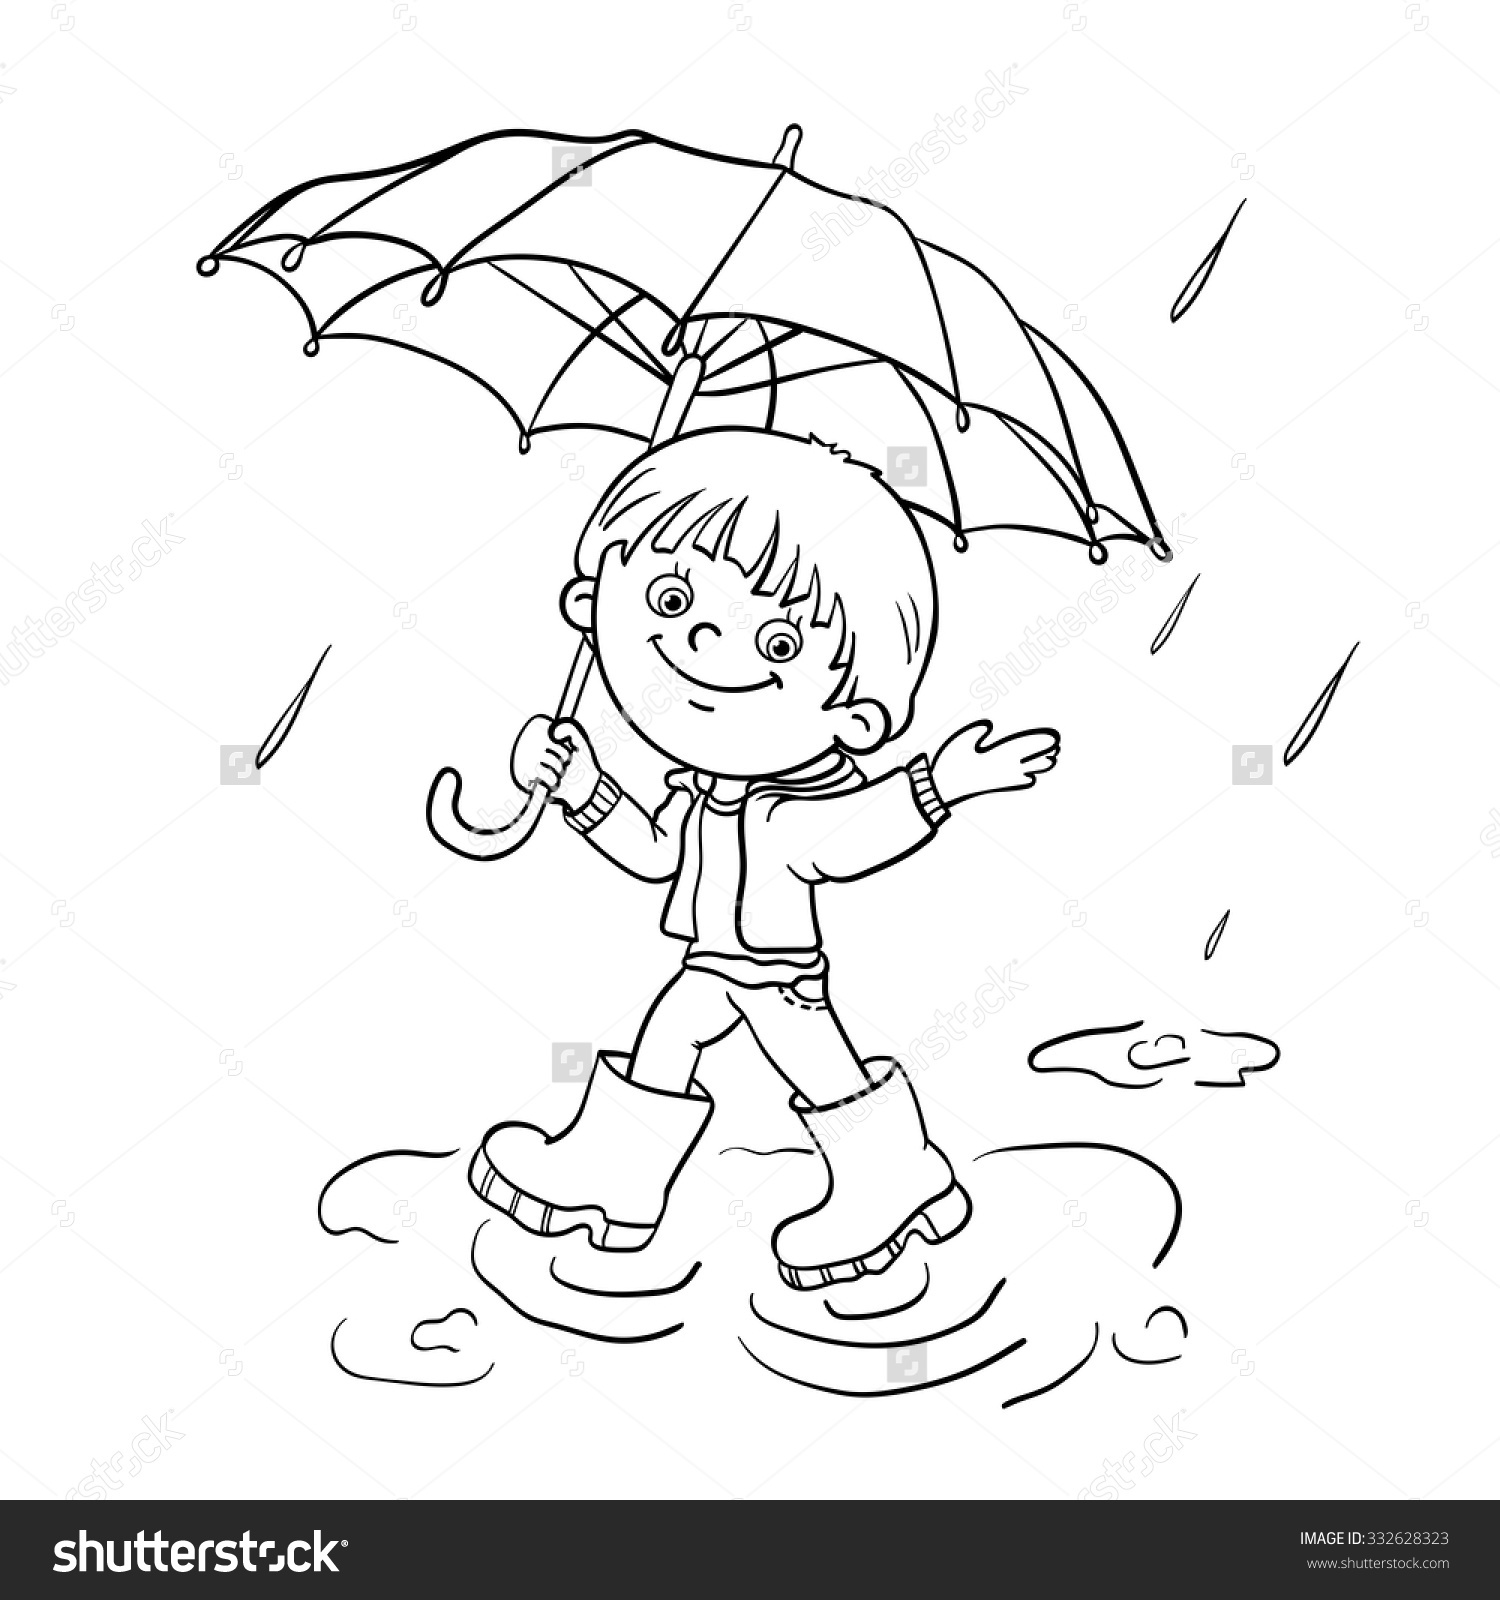 1500x1600 Playing In The Rain Coloring Pages Kids Playing In Rain Drawing